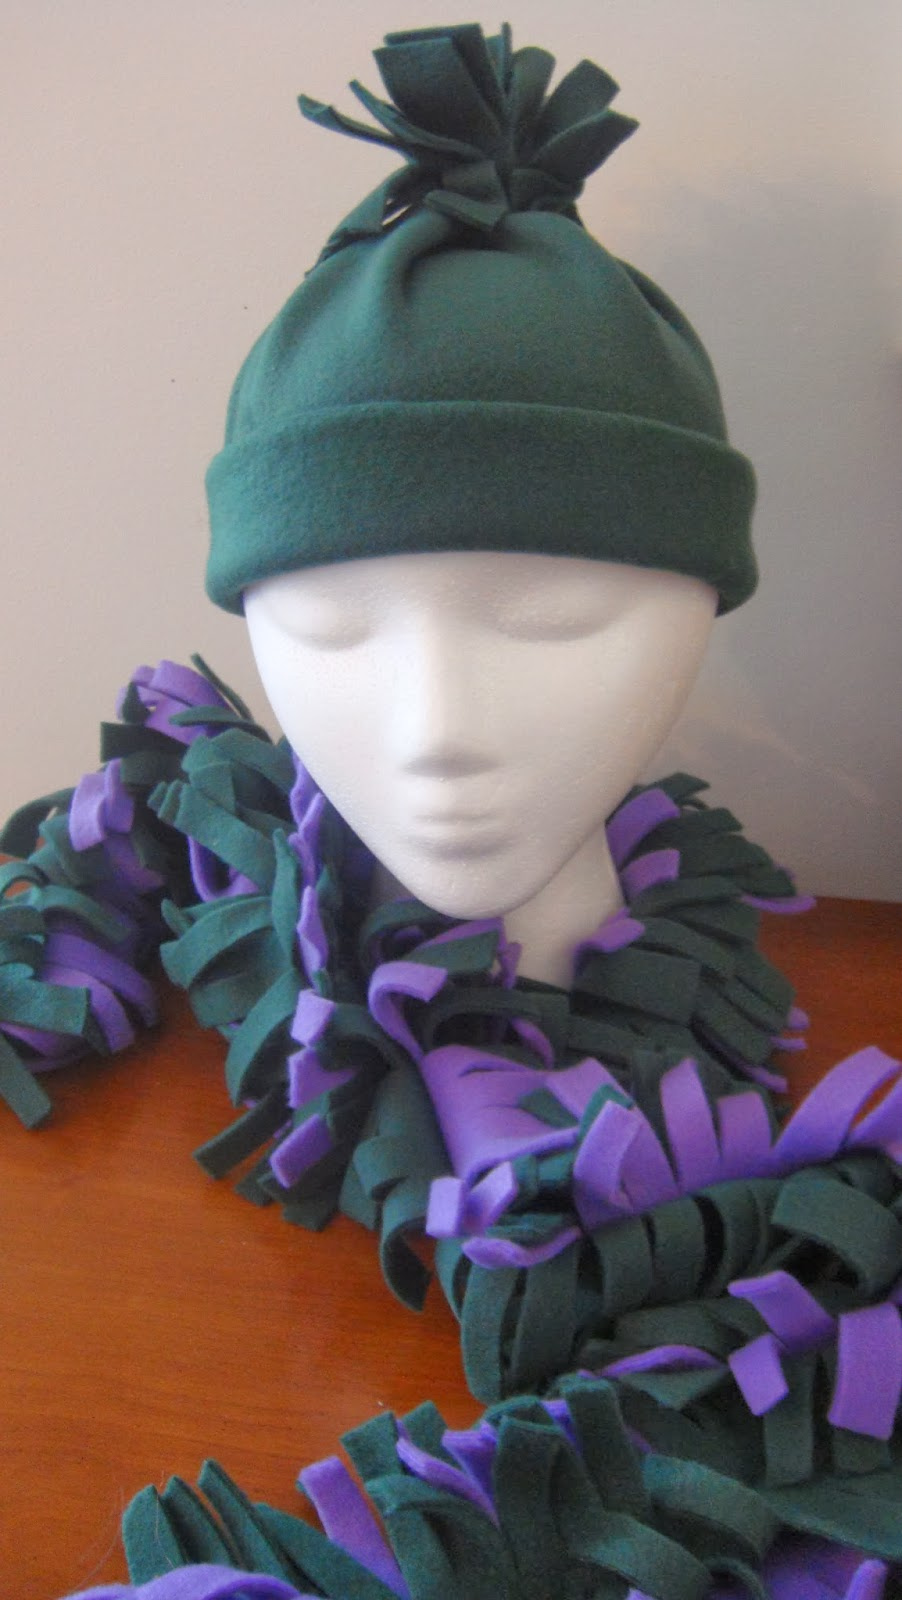 http://plumperfectandme.blogspot.com/2013/01/no-sew-frilly-fleece-hat-and-scarf.html